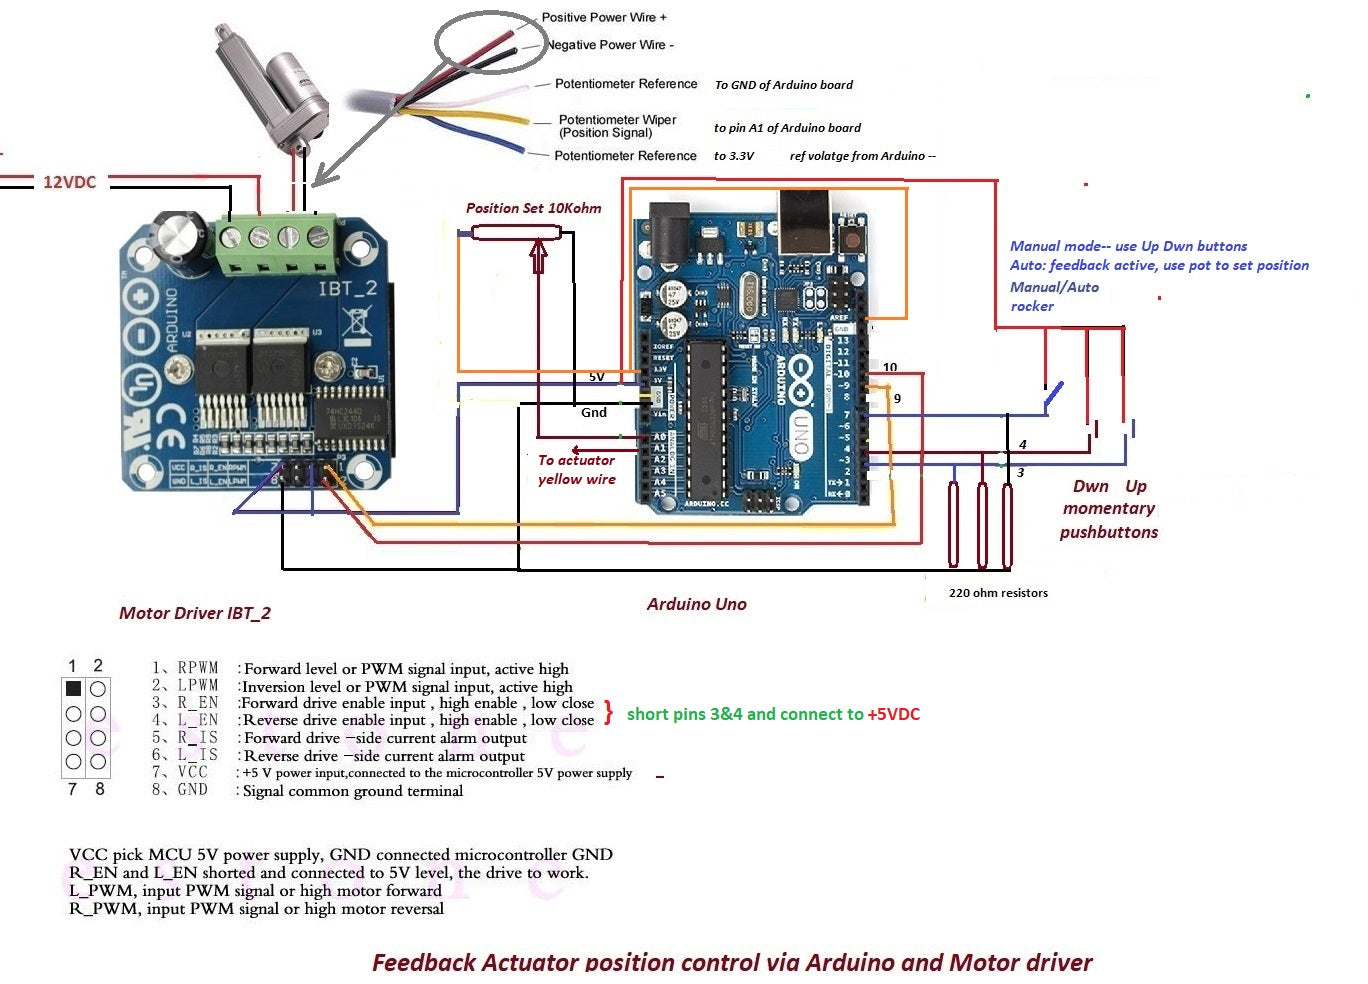 feedback rod linear actuators firgelli automationsLinear Actuator Wiring Diagram On Potentiometer Wiring Diagram #13